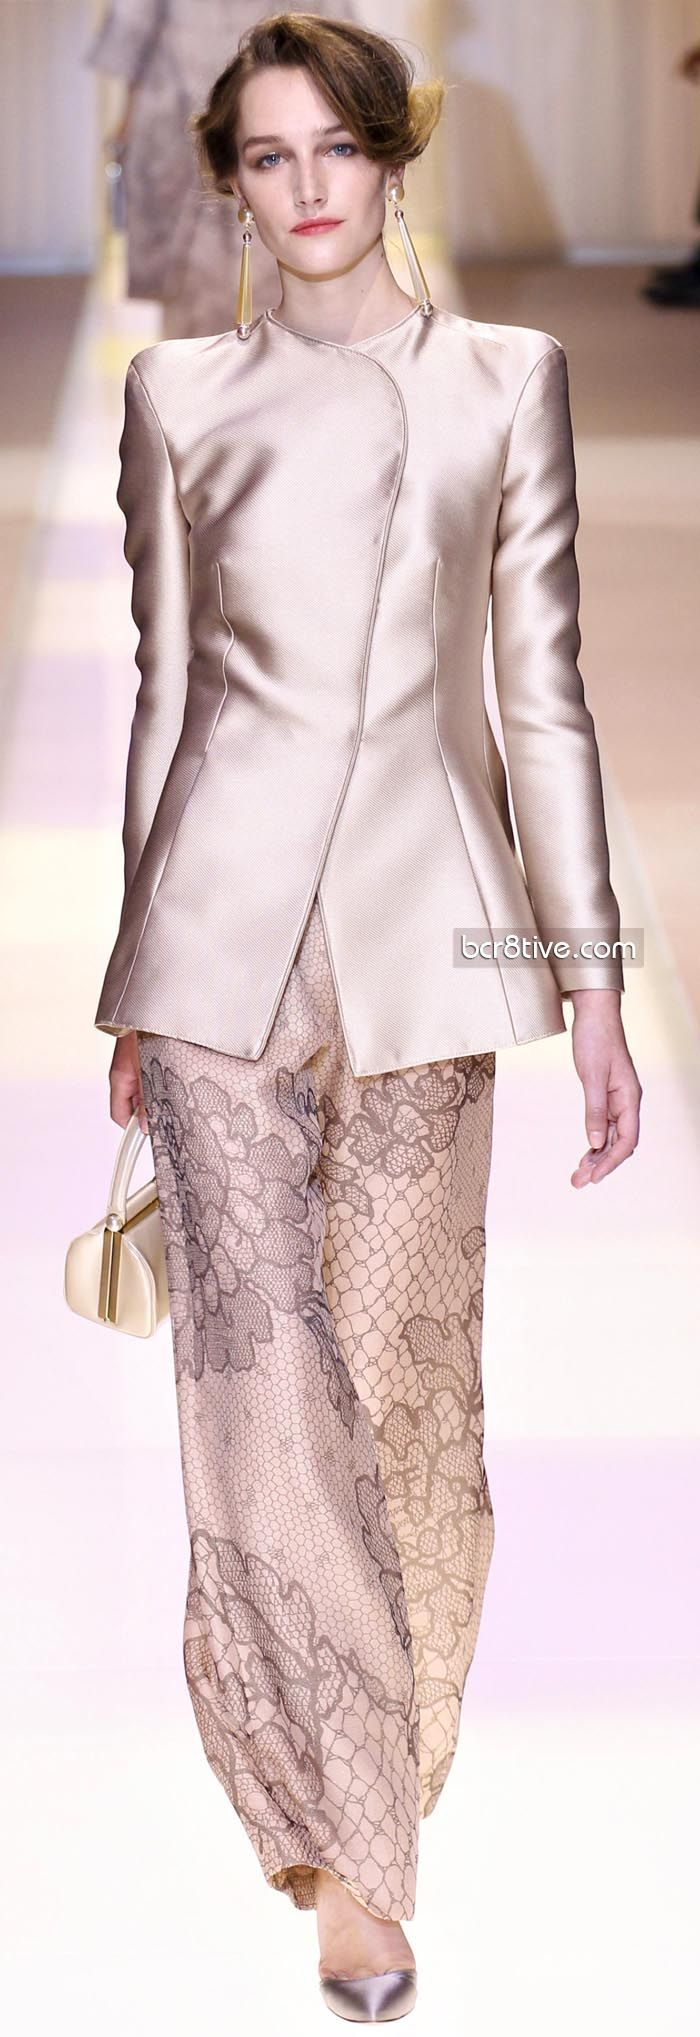 Chantilly lace printed trousers - fabulous! Giorgio Armani Privé Fall Winter 2013-14 Haute Couture